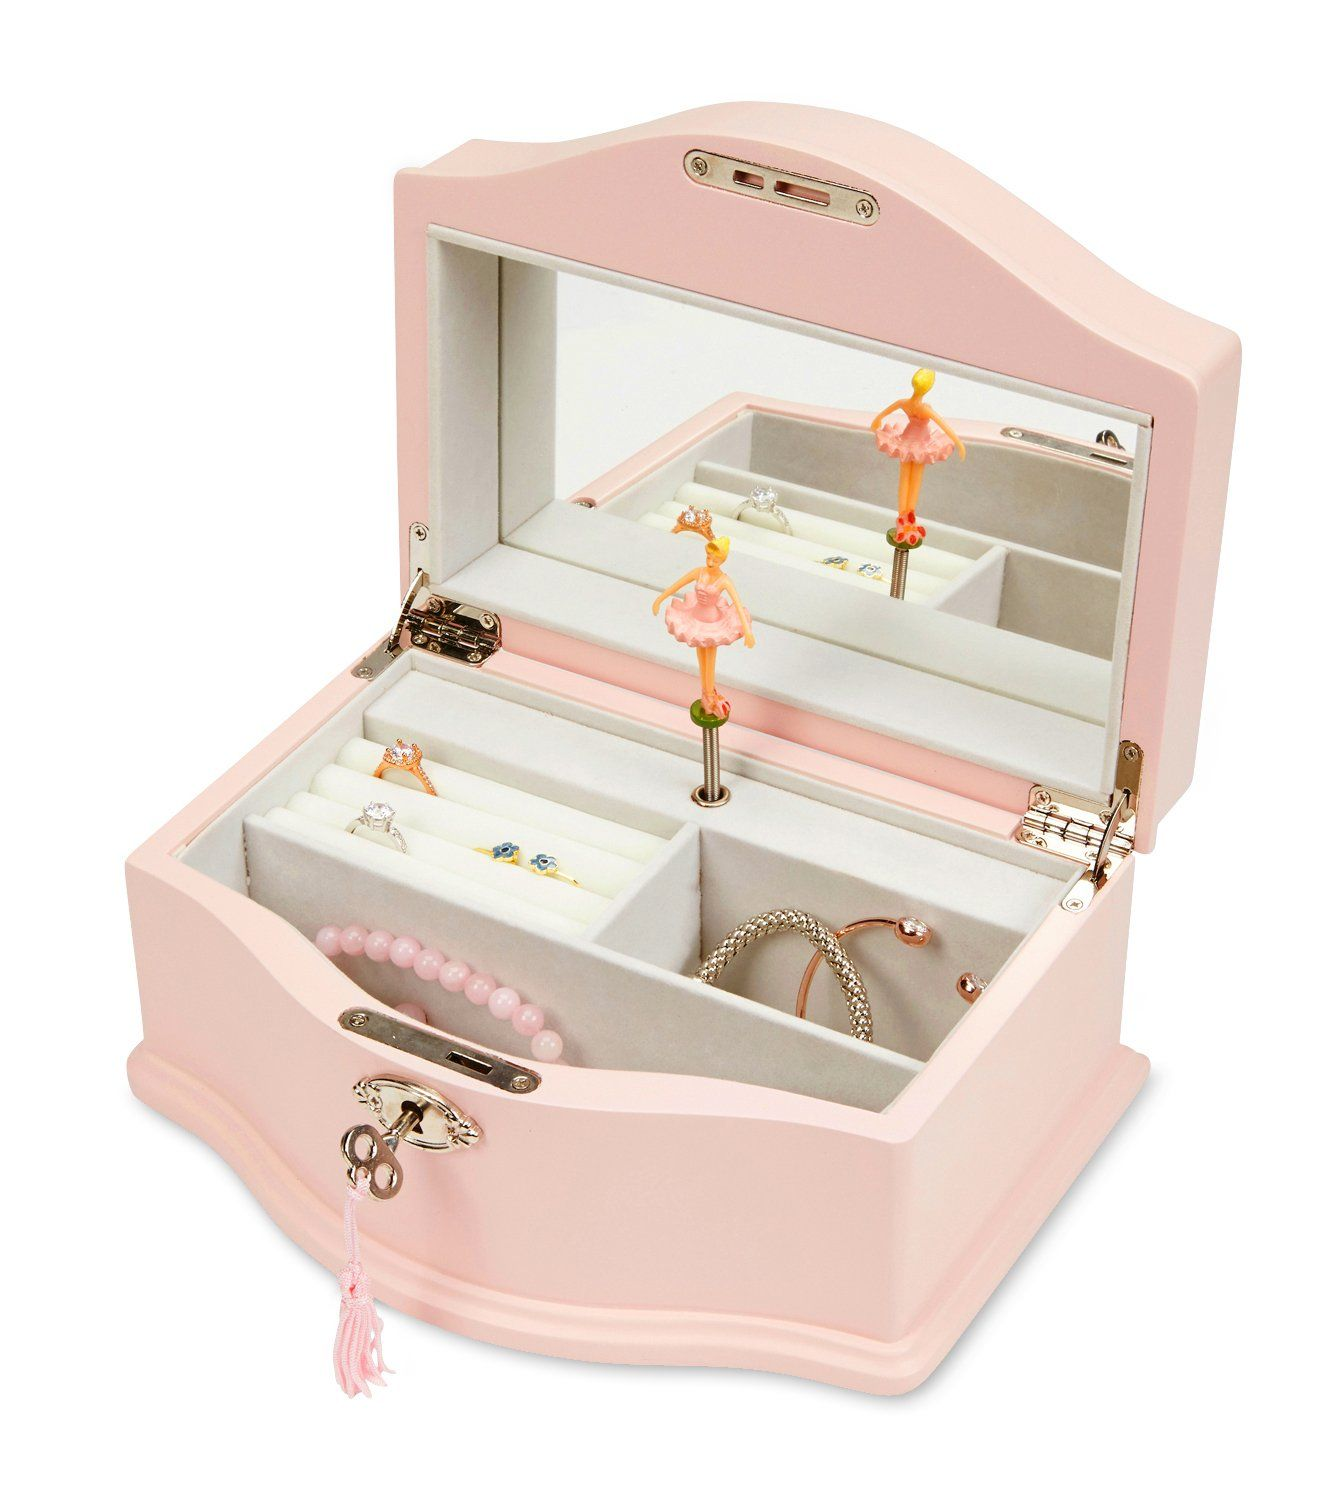 JewelKeeper Girls Wooden Musical Jewelry Box with Lock and Key